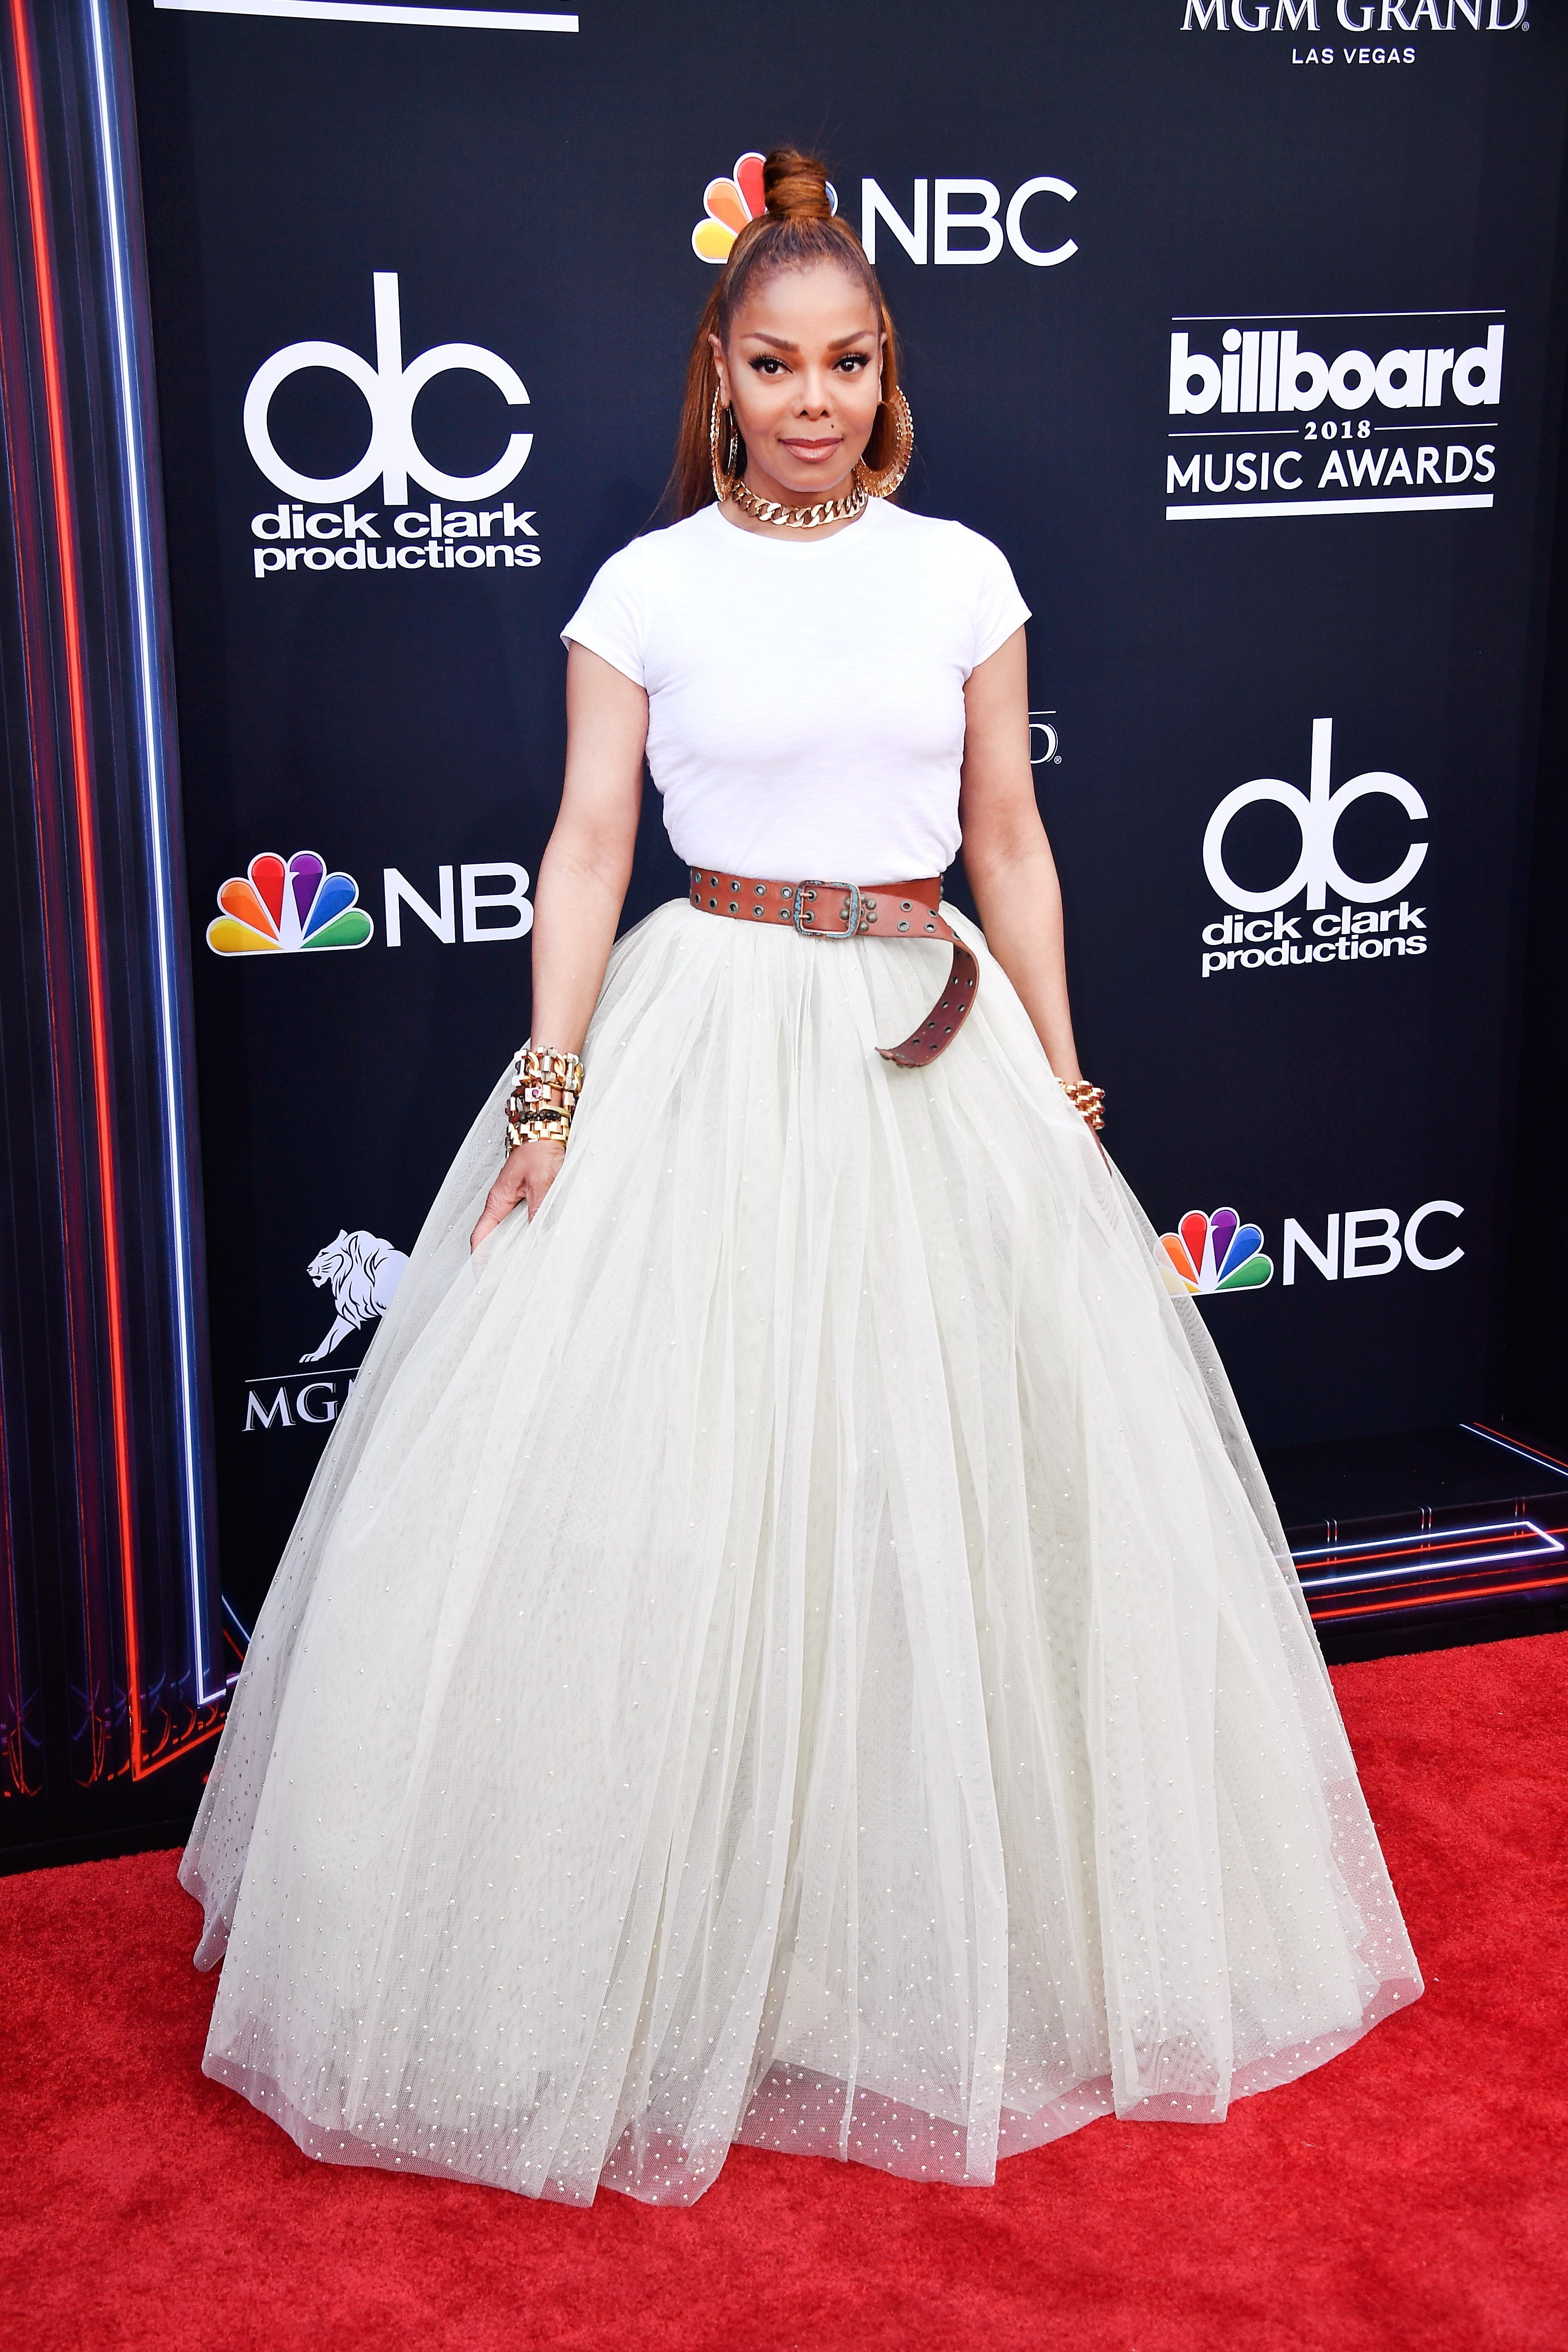 Janet Jackson attends the 2018 Billboard Music Awards at MGM Grand Garden Arena on May 20, 2018 | Photo: Getty Images